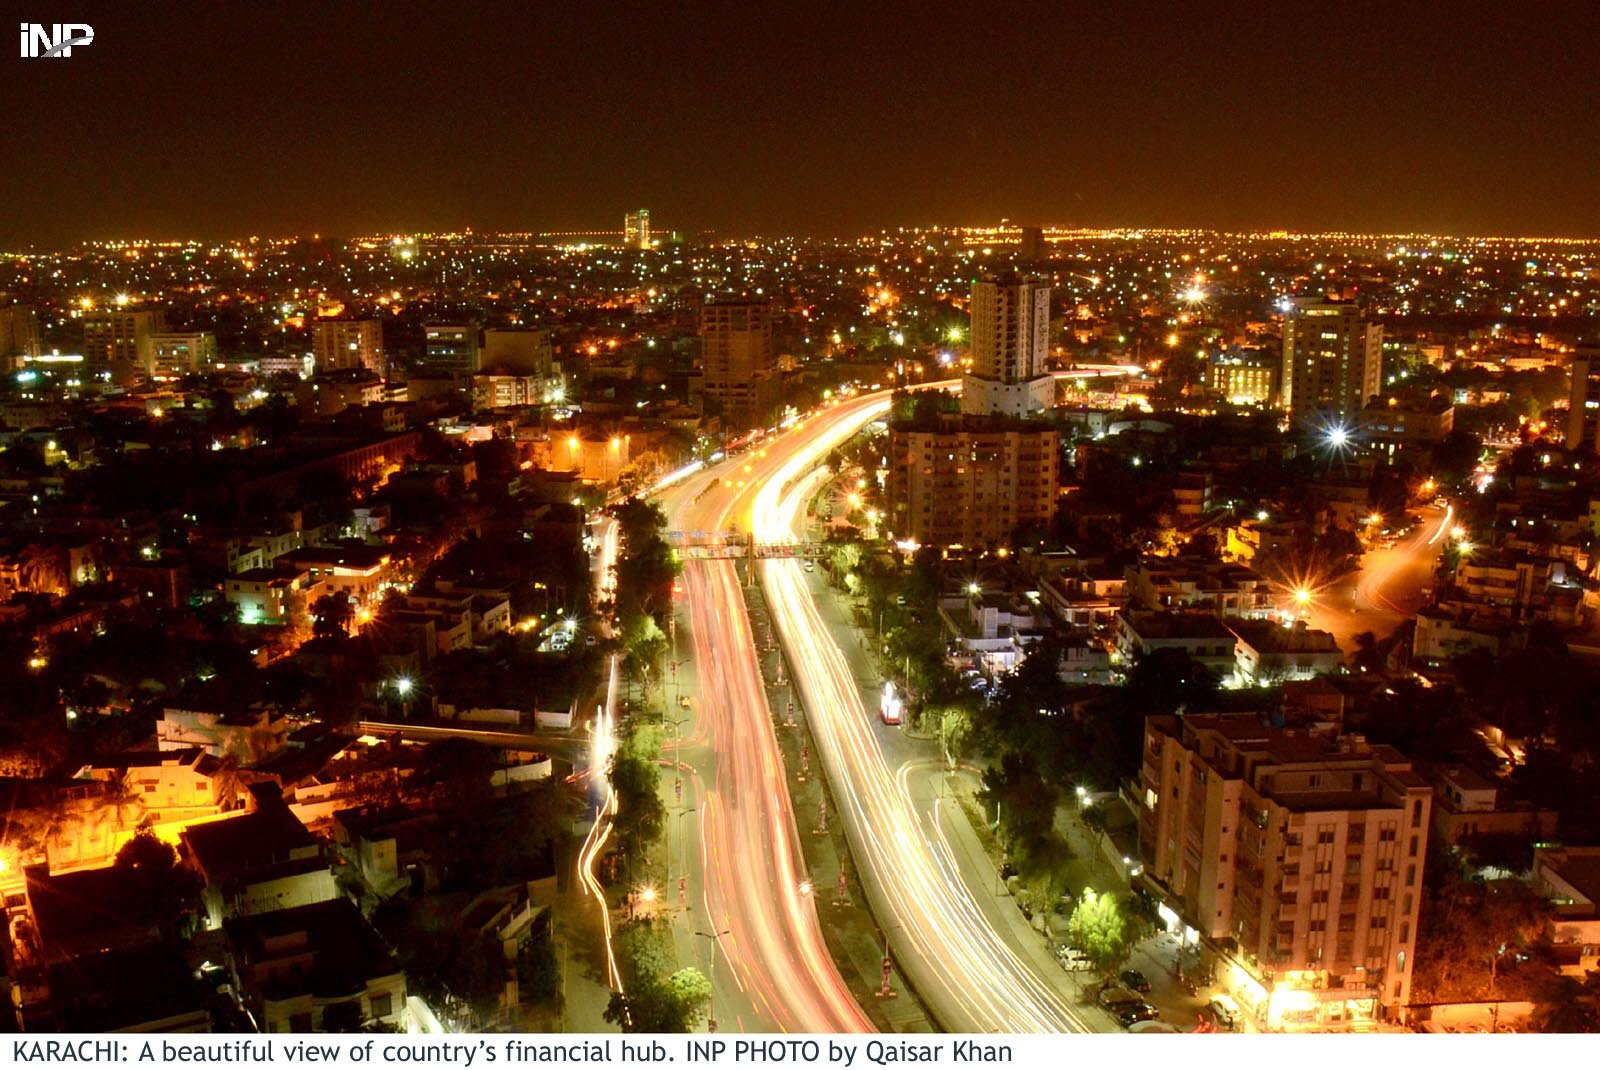 khi_city_view_inp-2-4-2-2-2-2-2-2-2-2-2-2-2